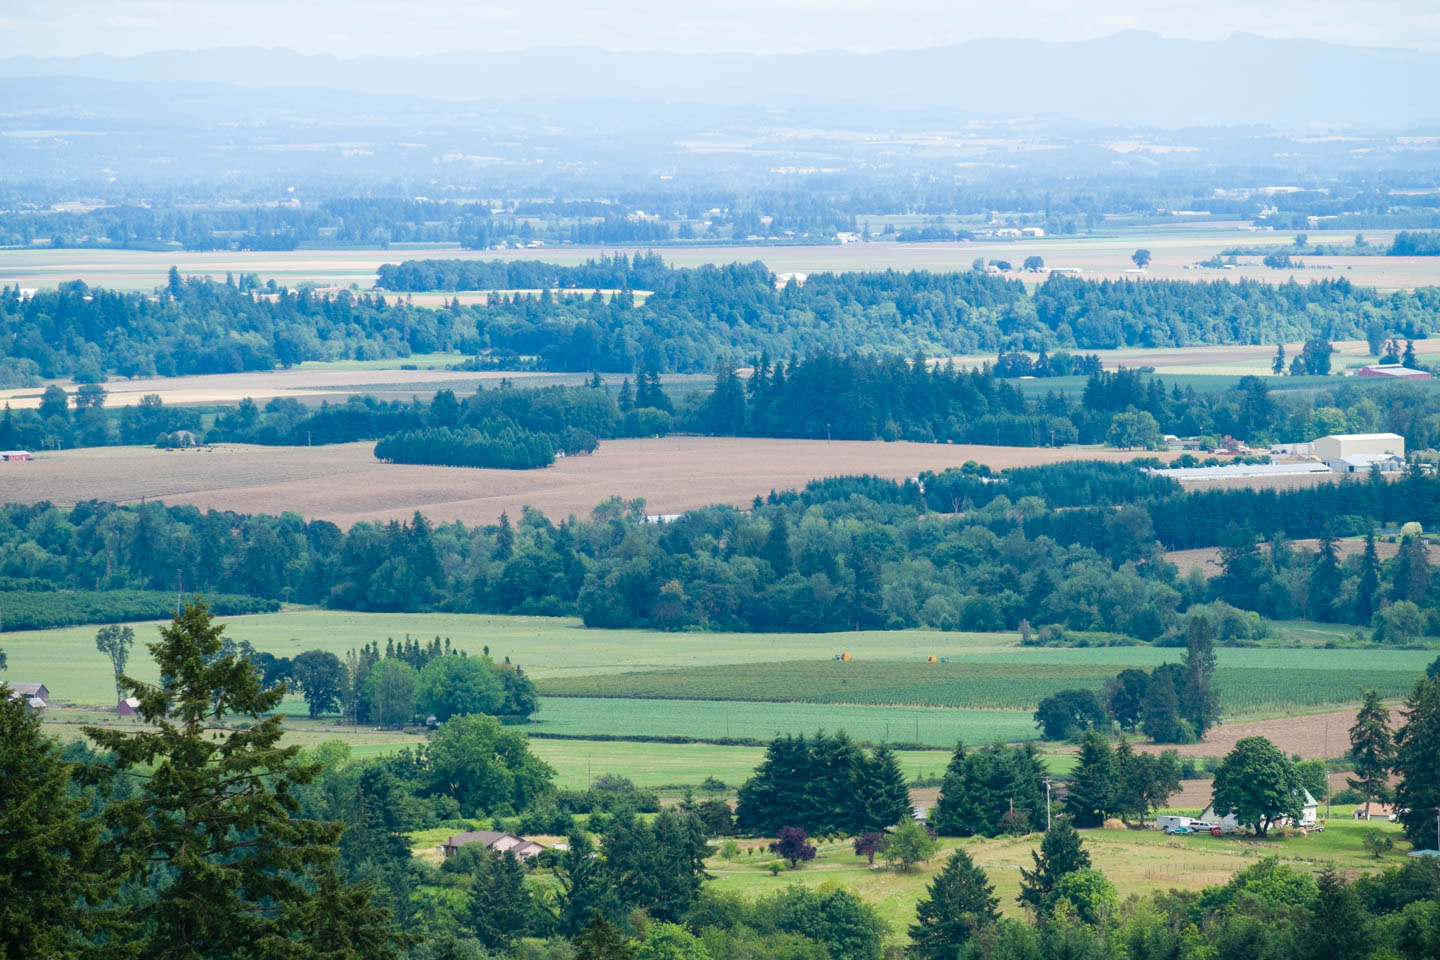 Overlooking Oregon and the farmland